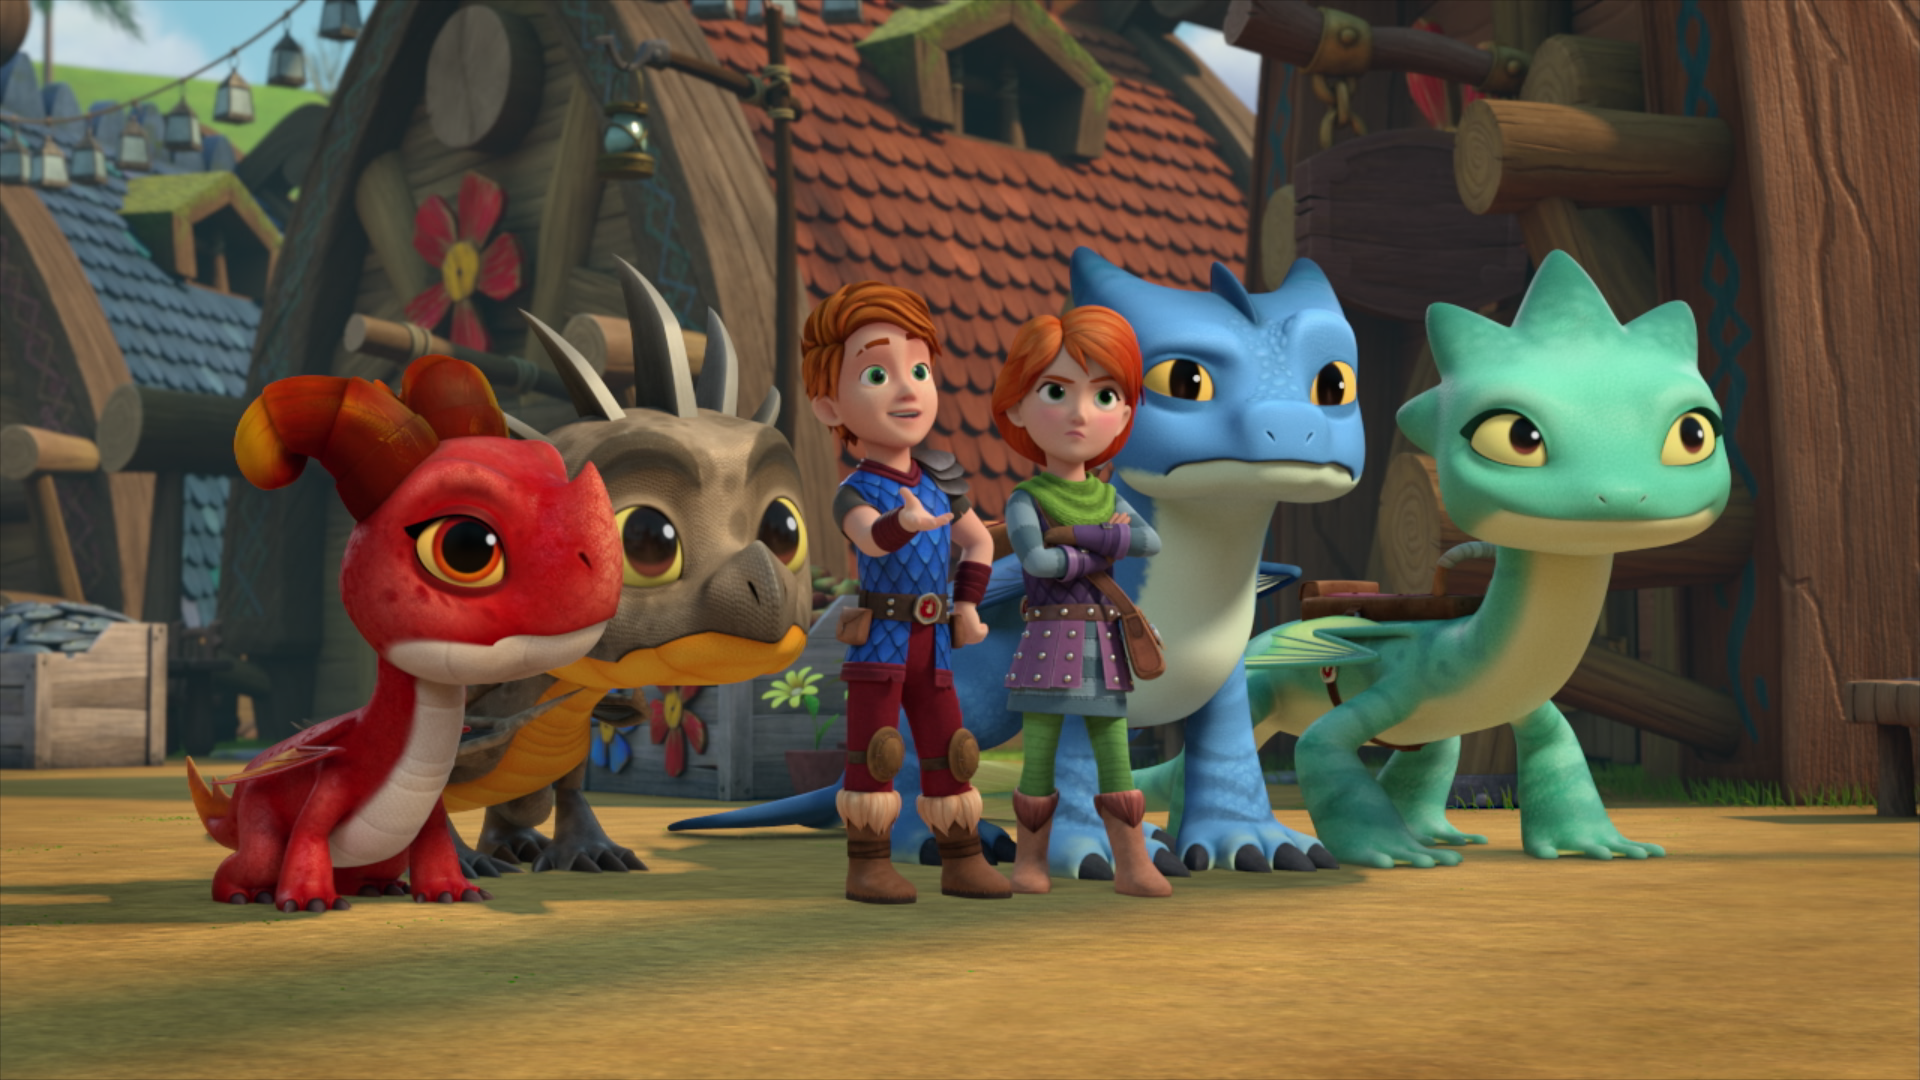 The best new kids' movies on Netflix in February